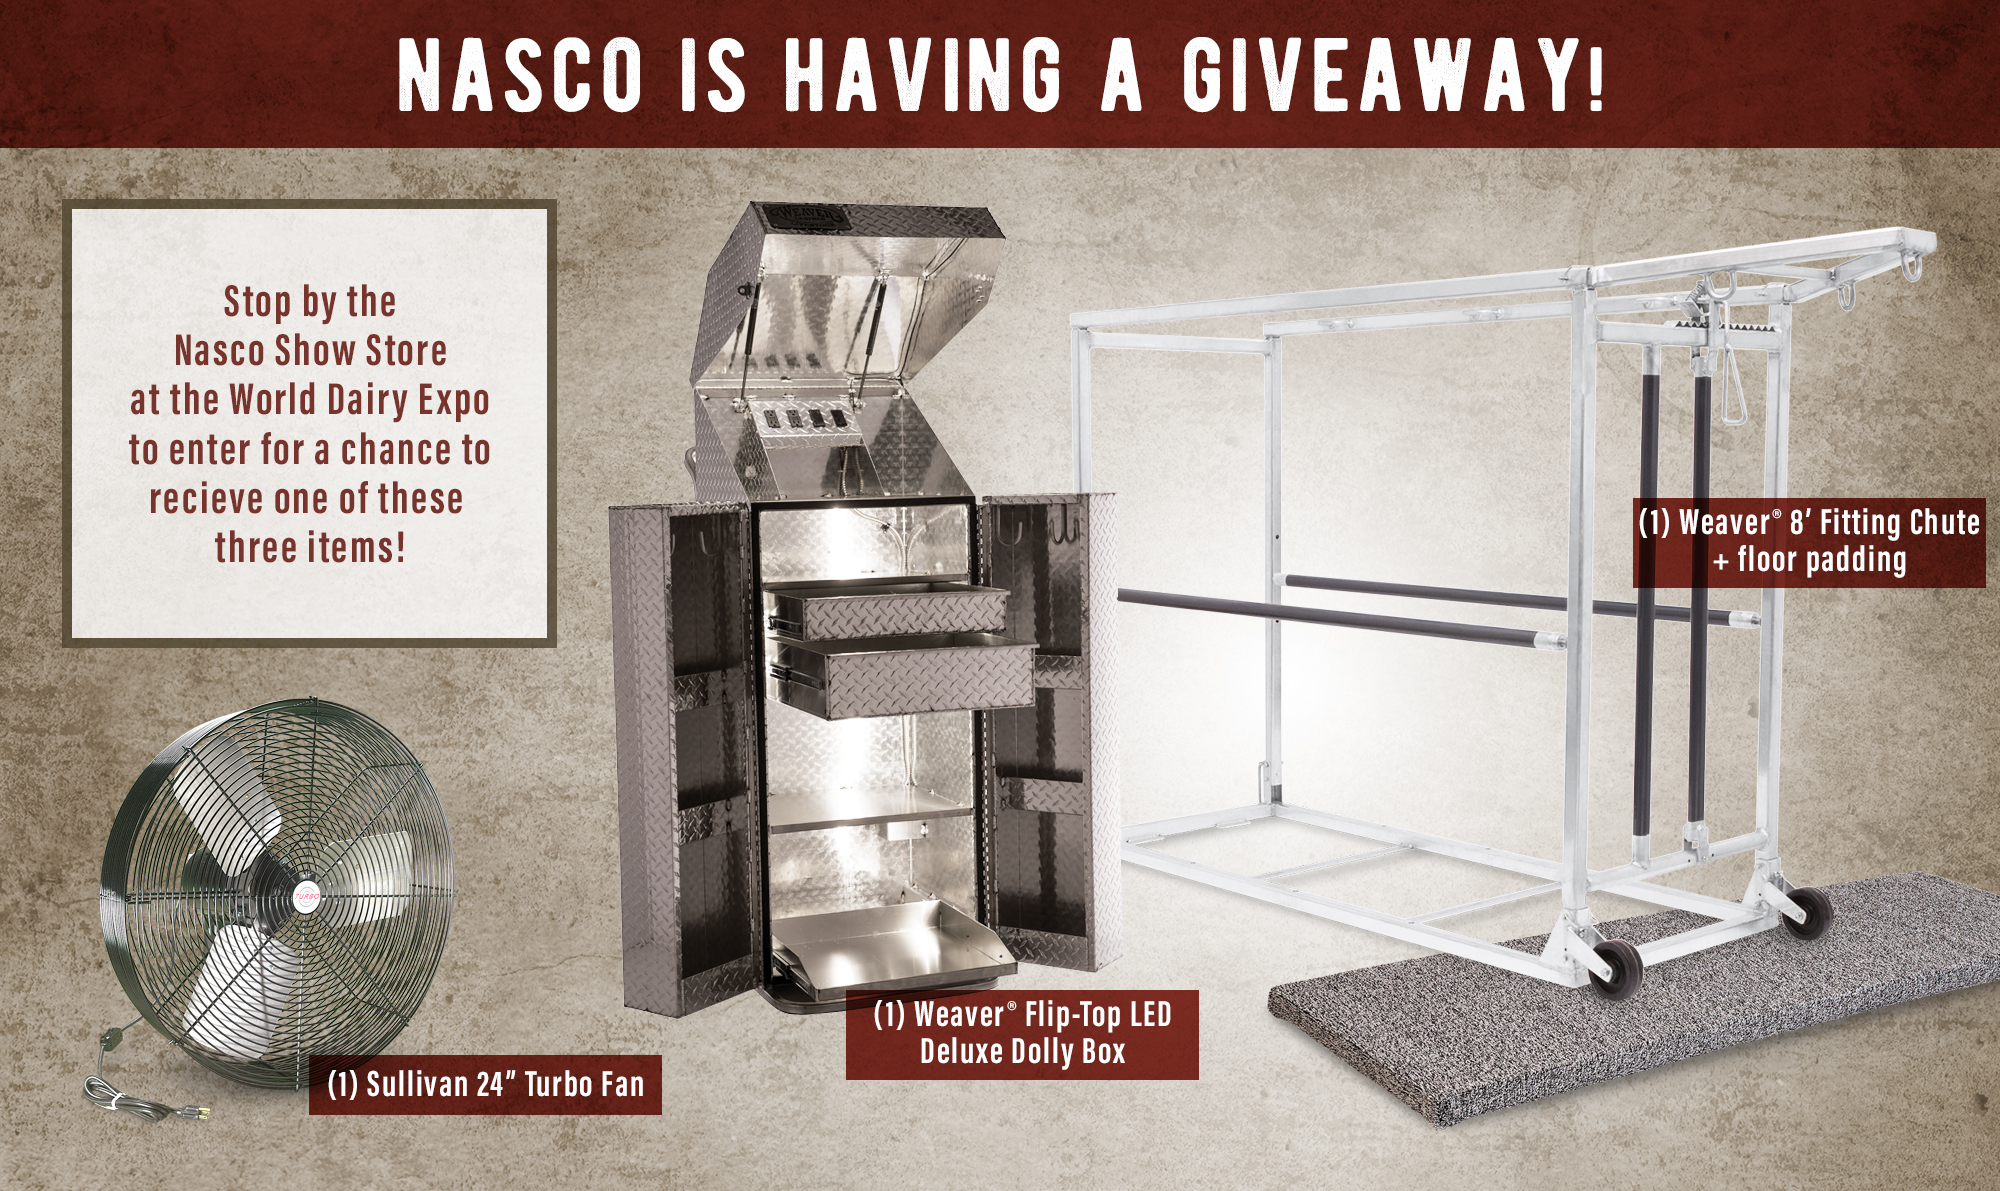 Nasco World Dairy Expo Giveaway